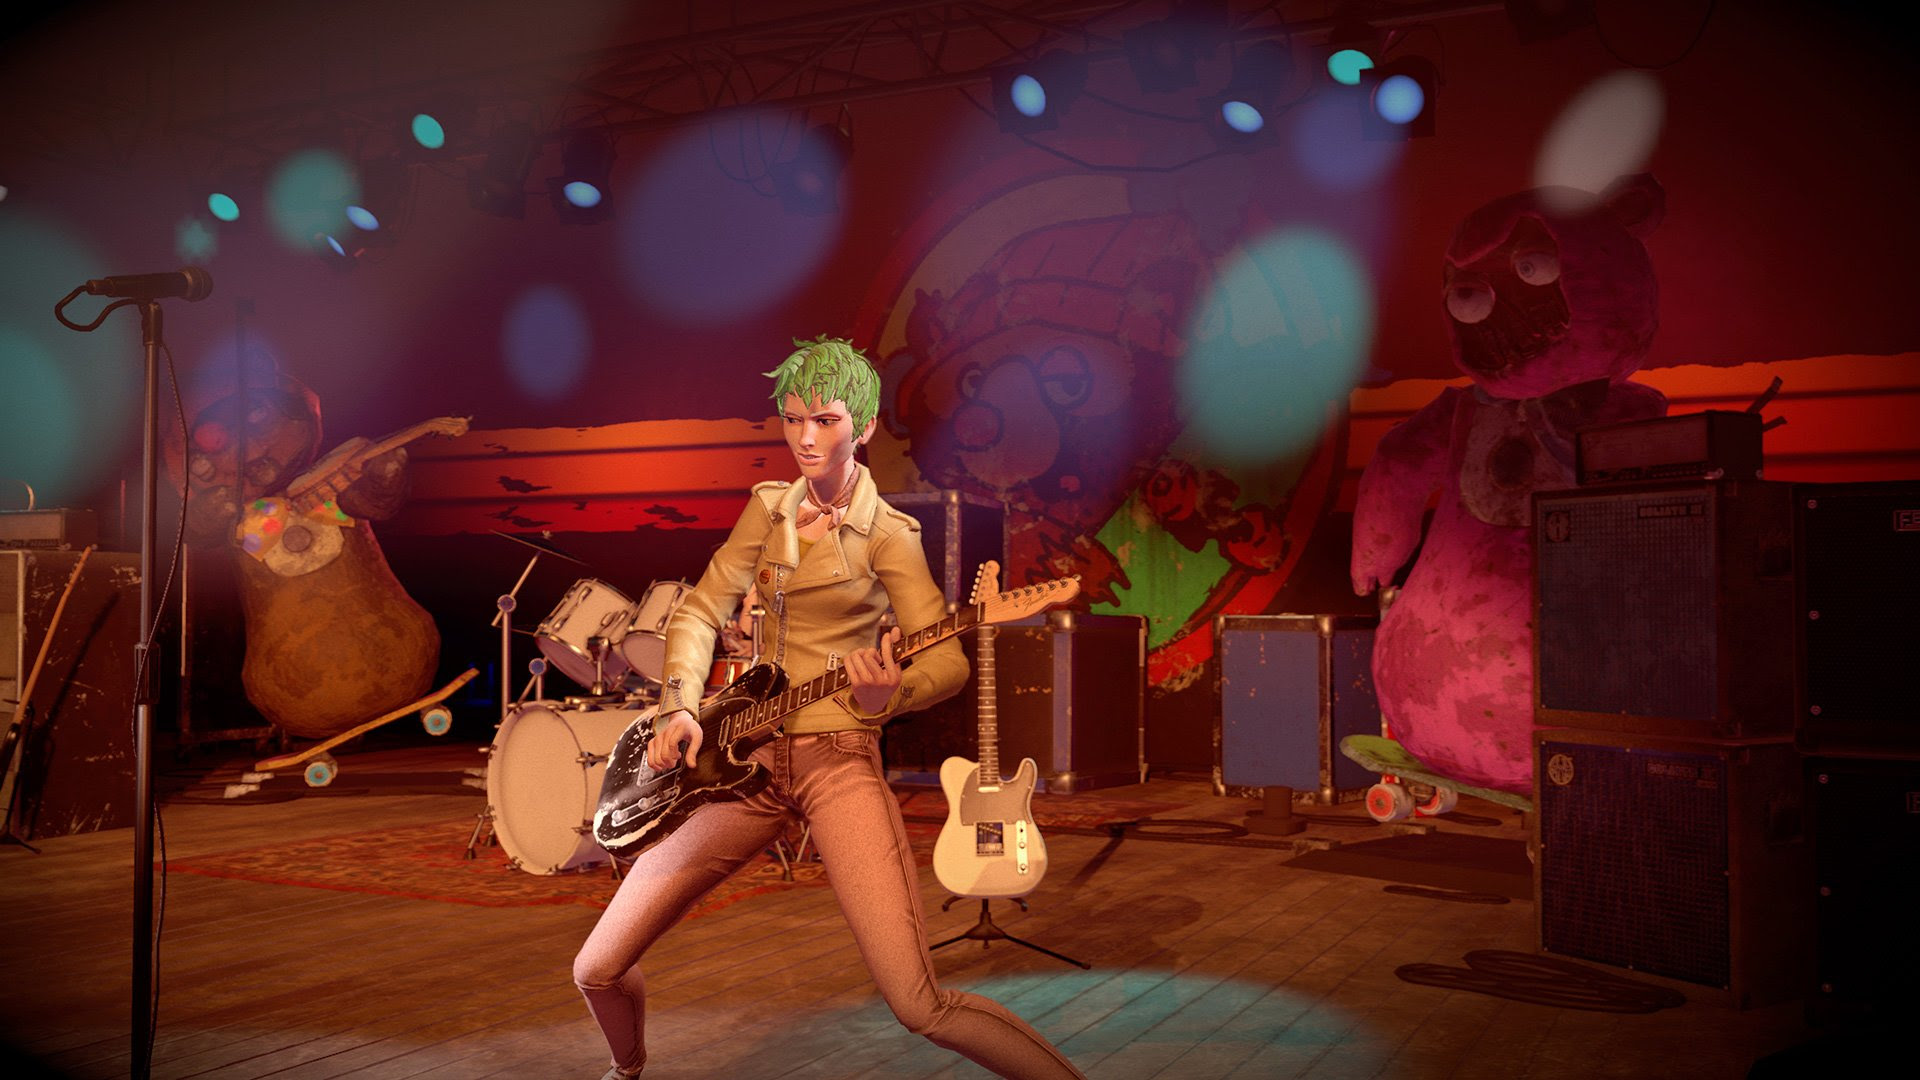 'In-A-Gadda-Da-Vida' coming to Rock Band, costs an extra dollar because it's so dang long screenshot